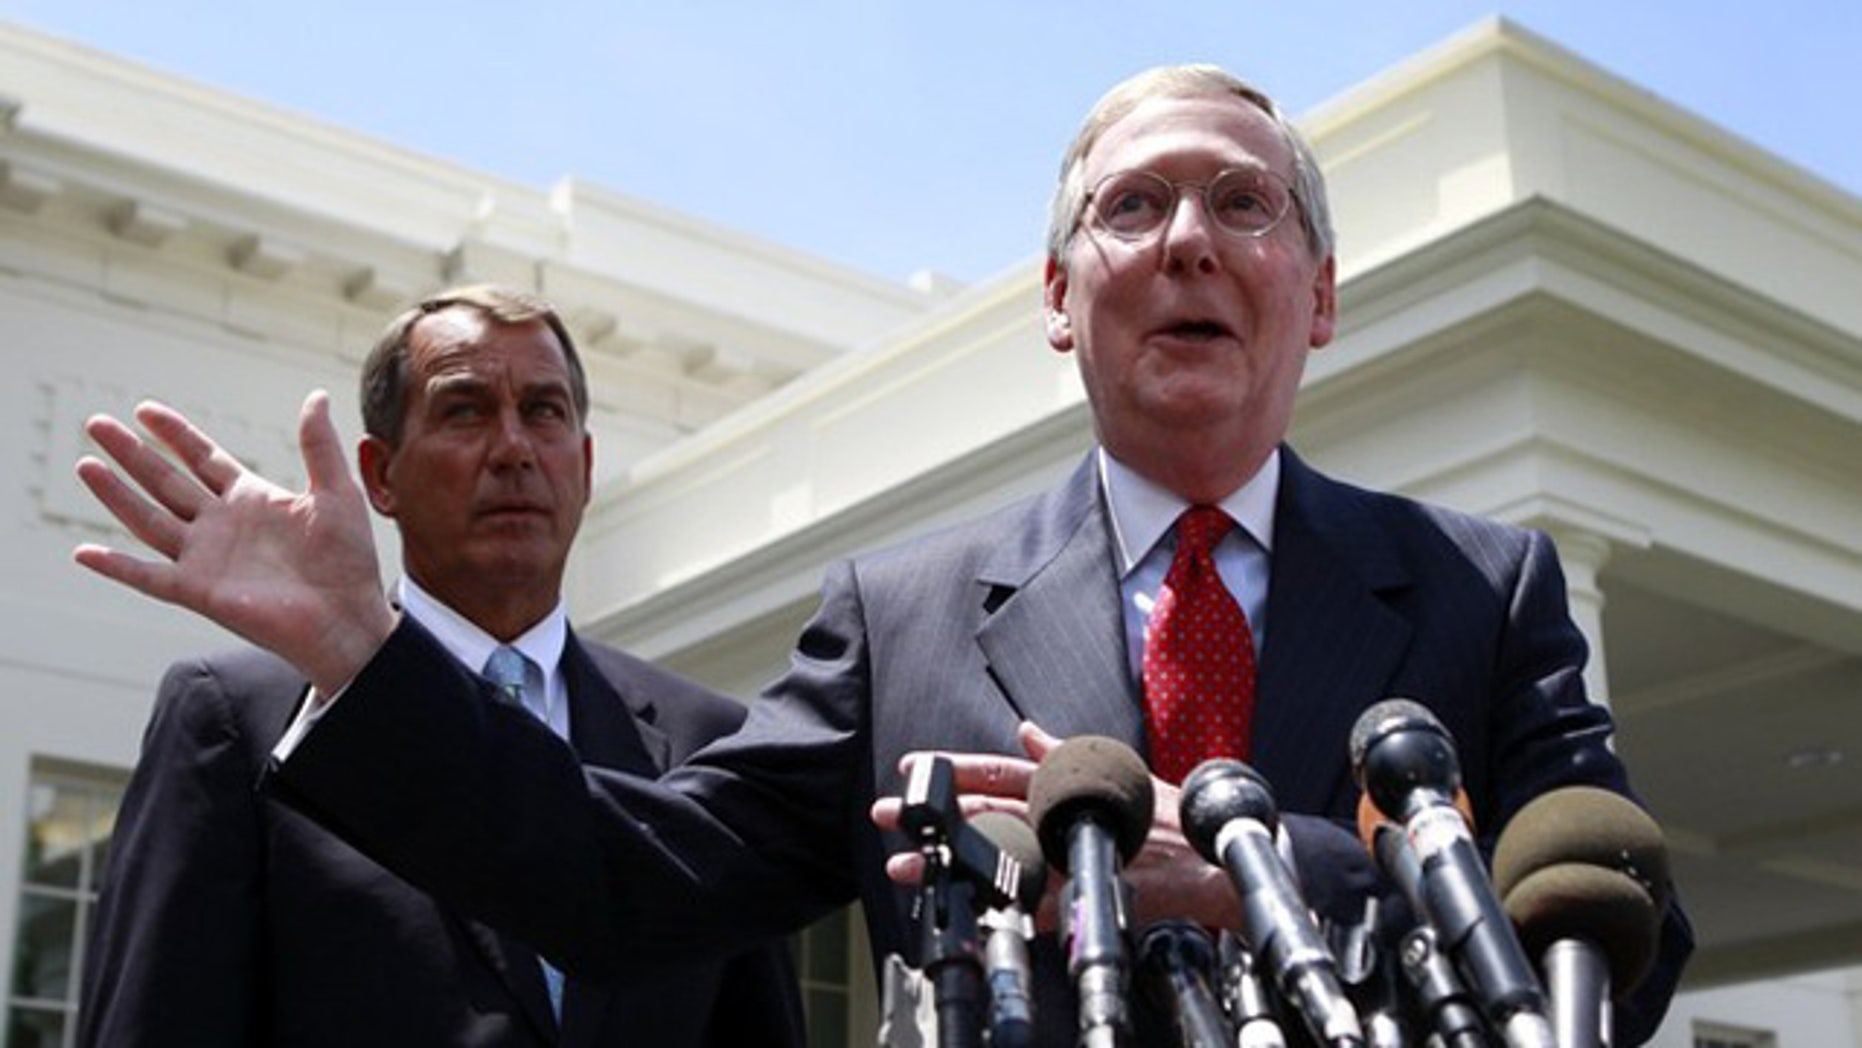 Senate Minority Leader Mitch McConnell, right, and House Minority Leader John Boehner are shown outside the White House June 10. (Reuters Photo)